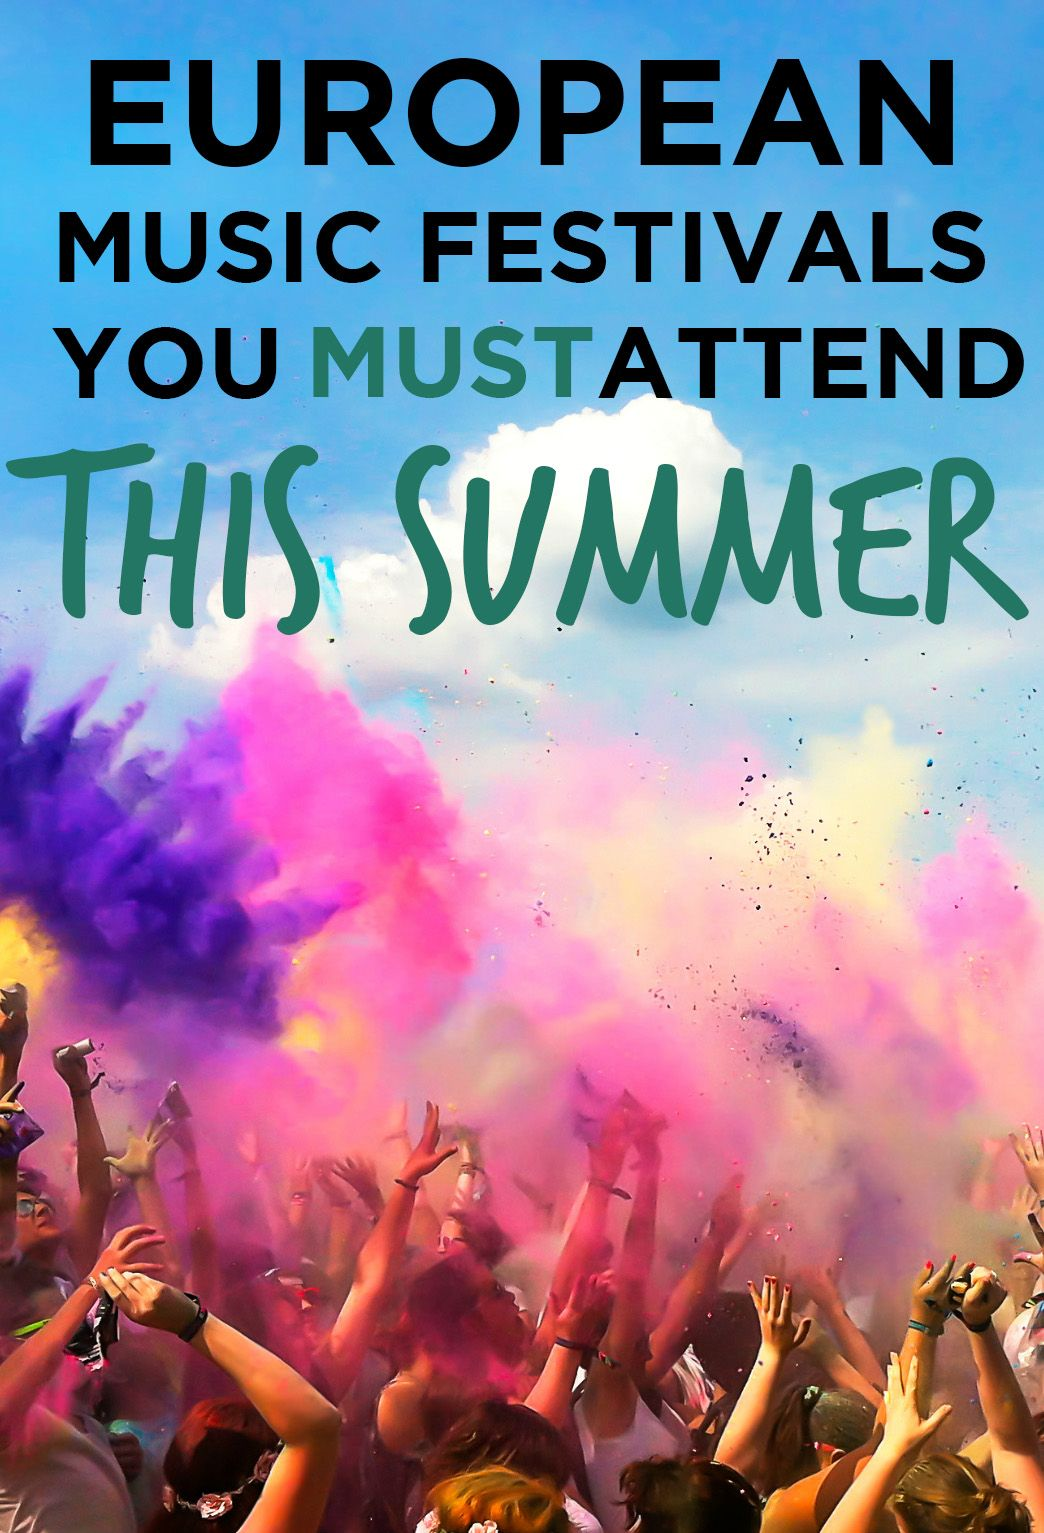 top europe music festivals you must attend in 2016 what makes your list spotahome travel. Black Bedroom Furniture Sets. Home Design Ideas